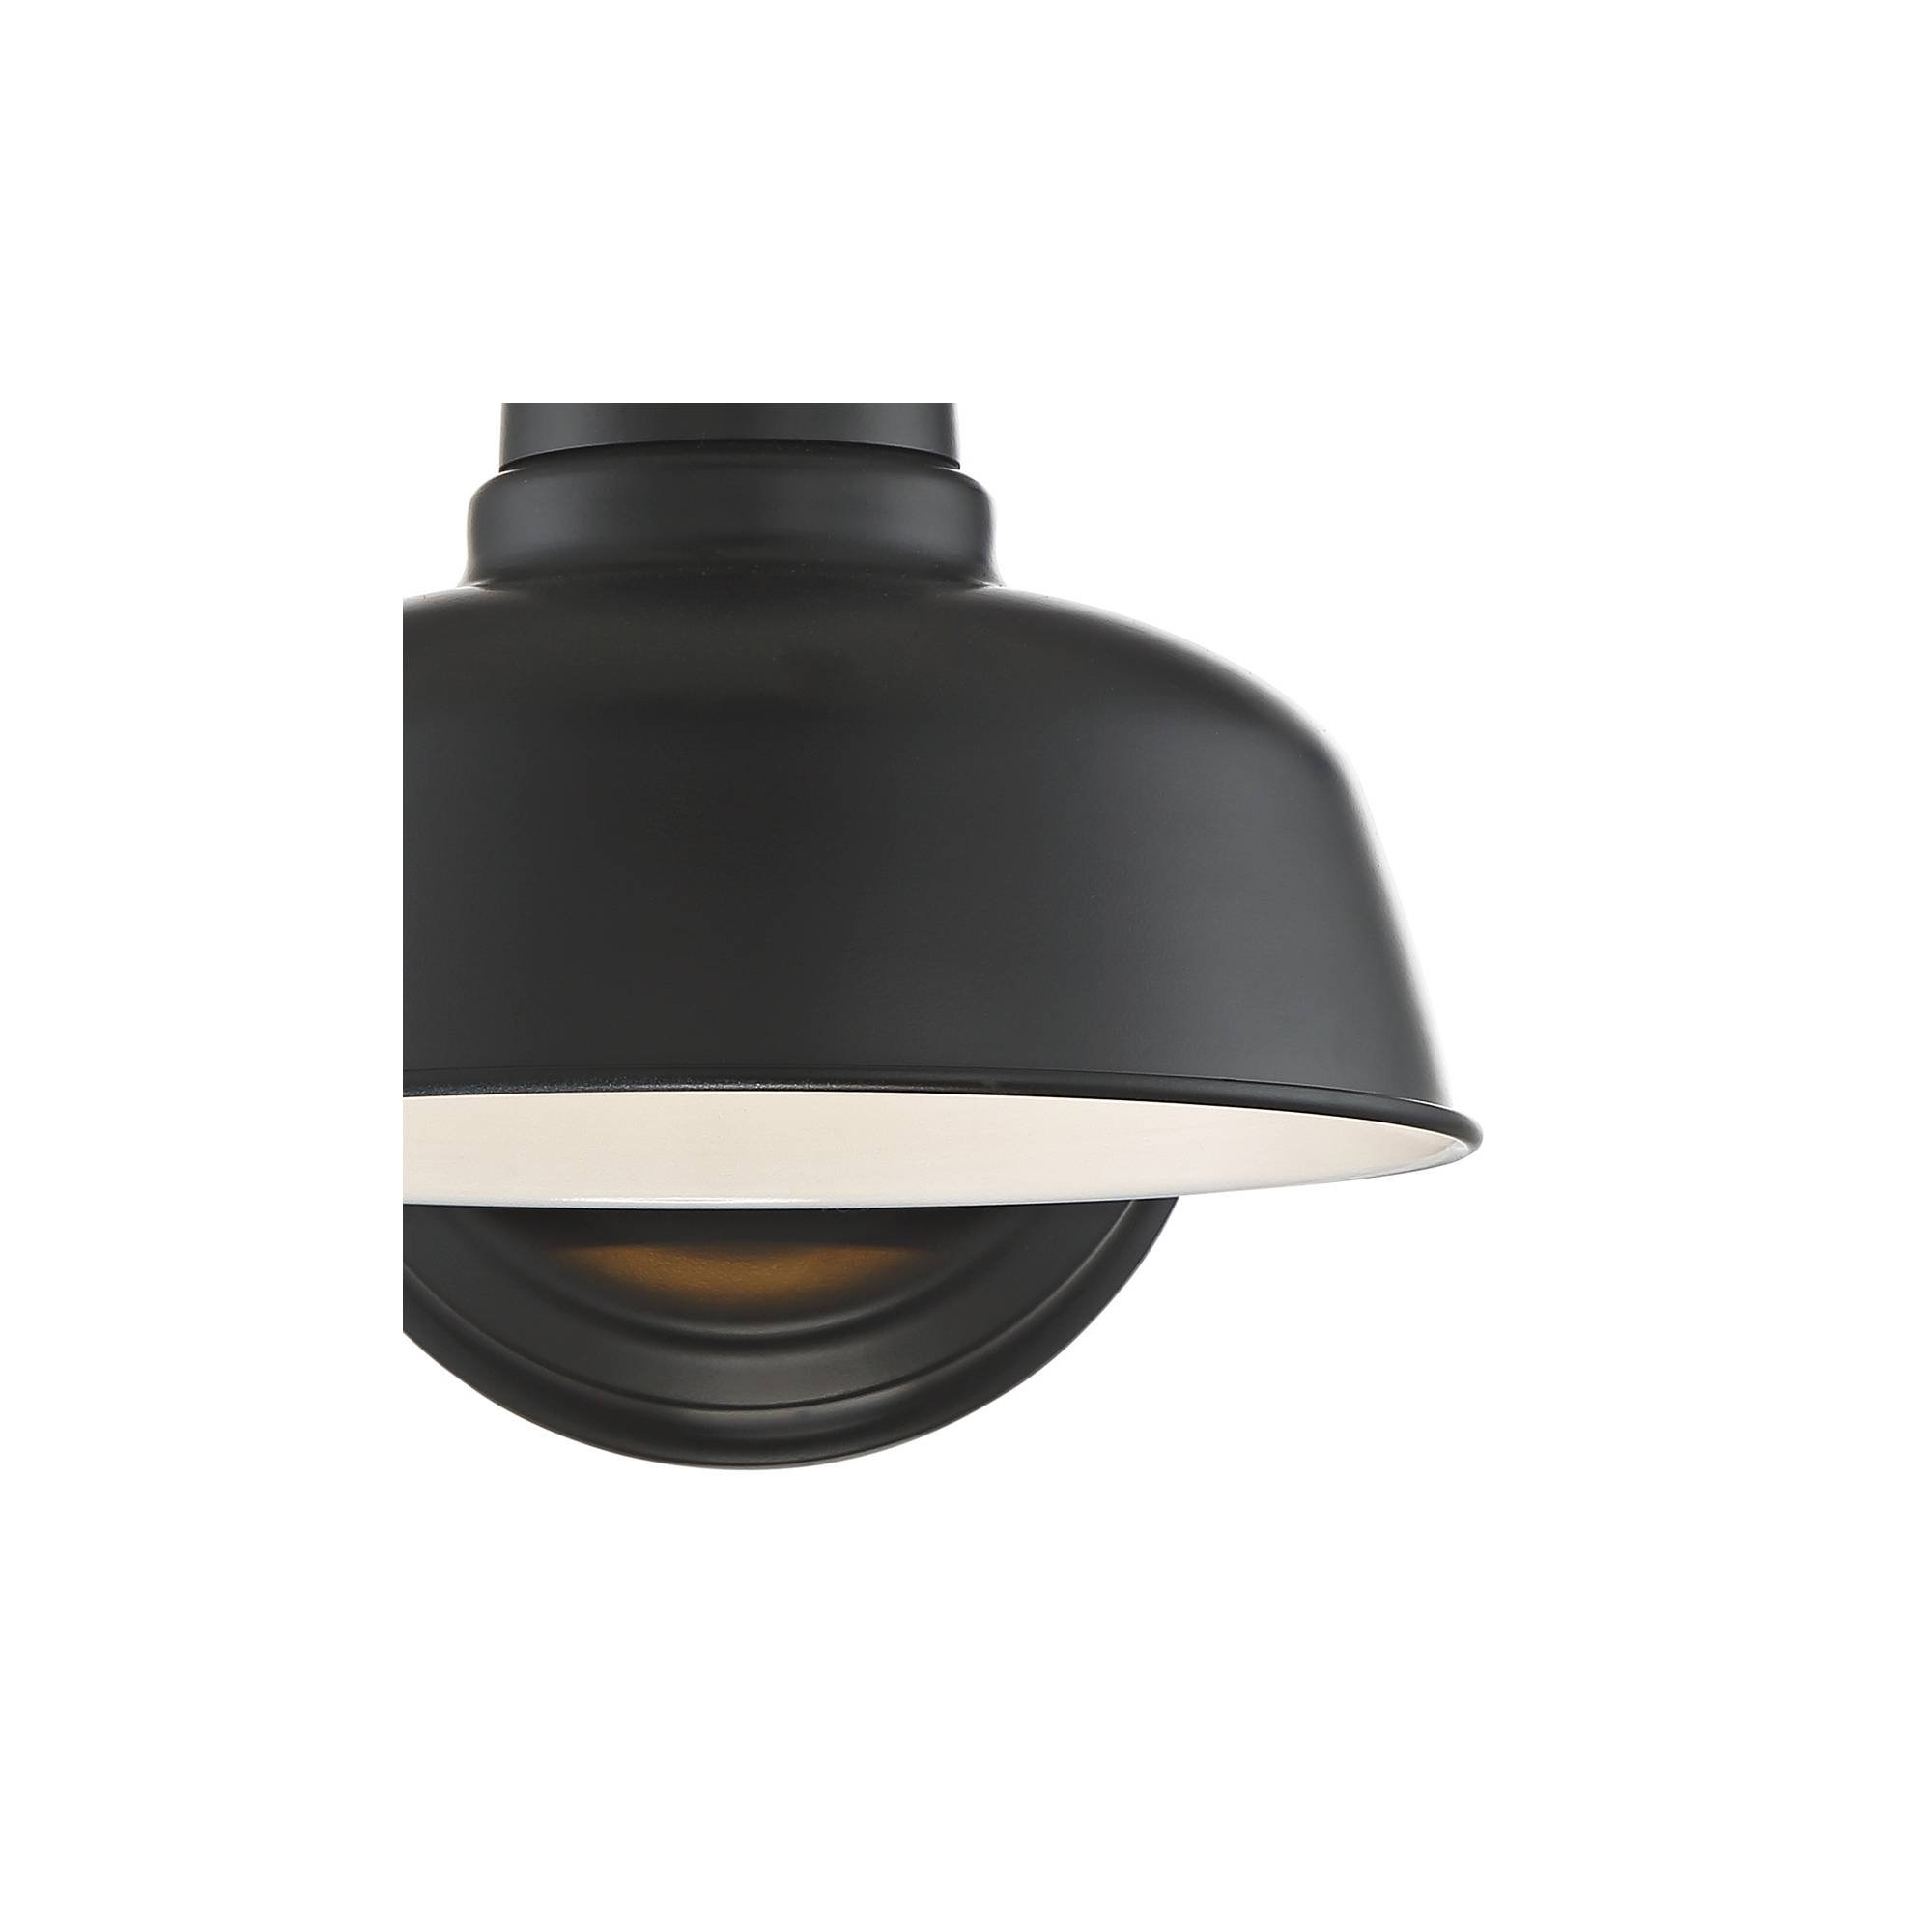 Urban Barn Rustic Outdoor Wall Light Fixture Farmhouse Black 11 1/4'' Sconce for Exterior House Deck Patio - John Timberland by John Timberland (Image #3)